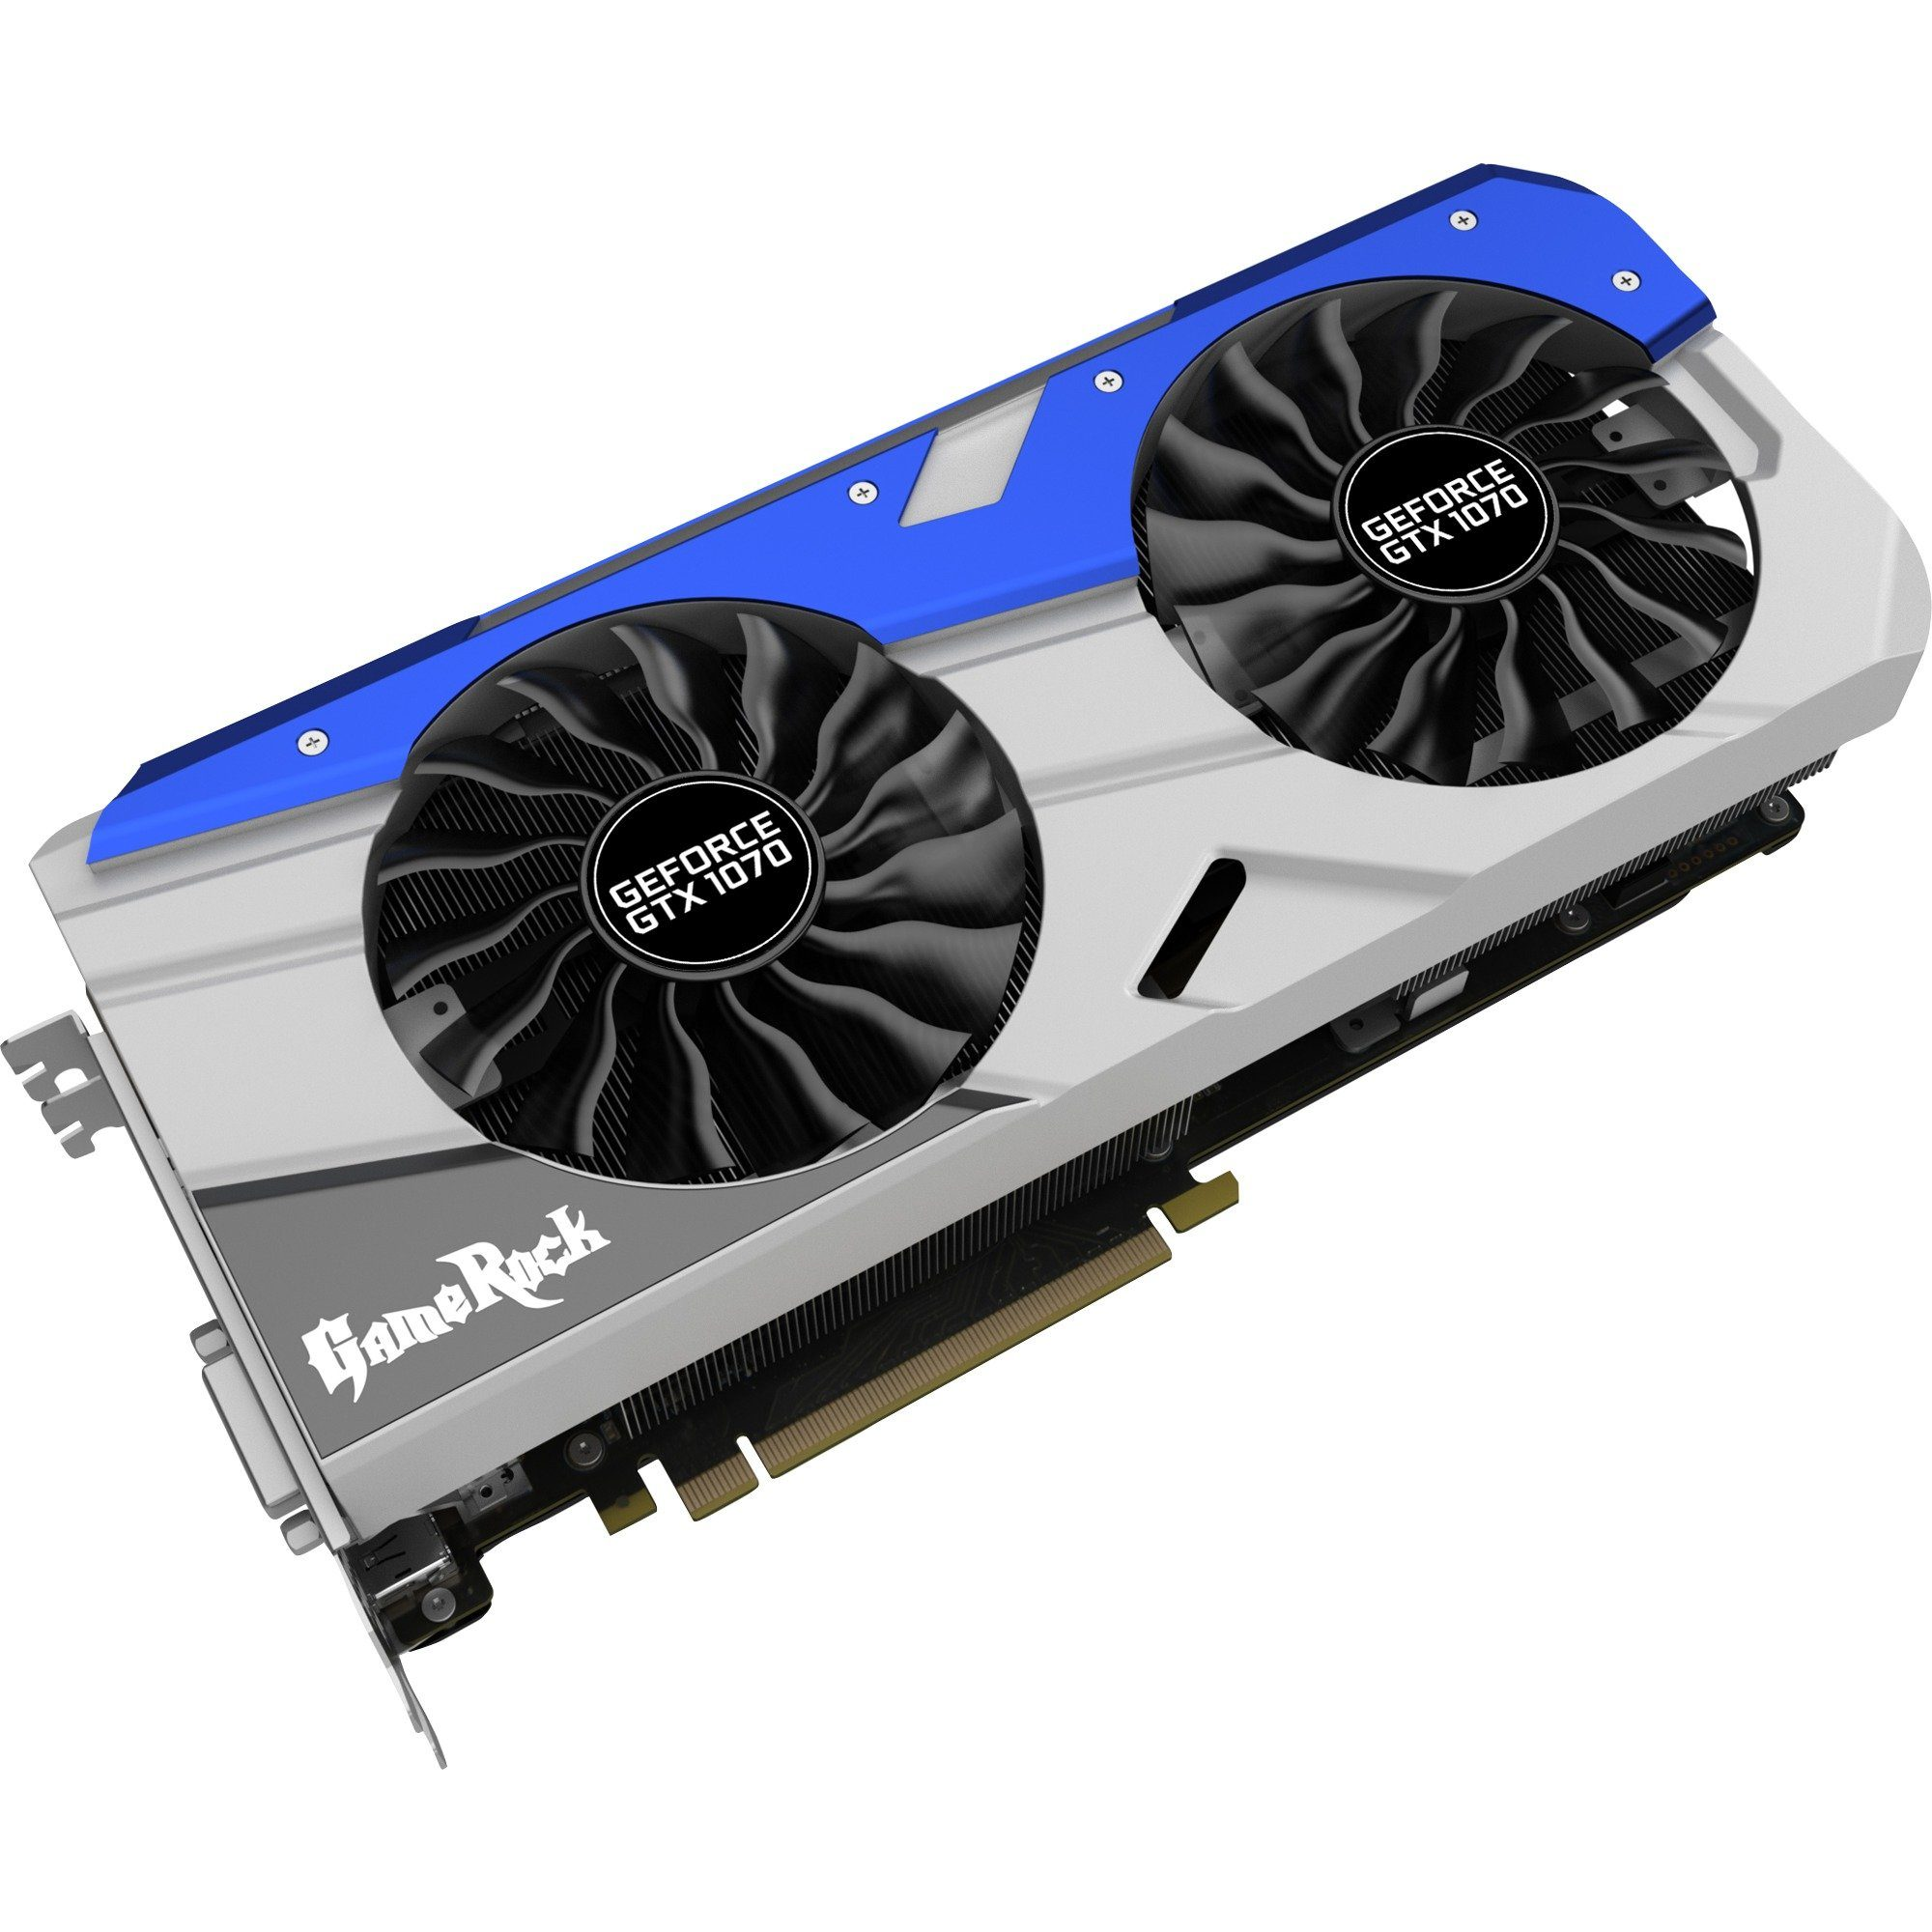 Palit Grafikkarte »GeForce GTX 1070 Gamerock«